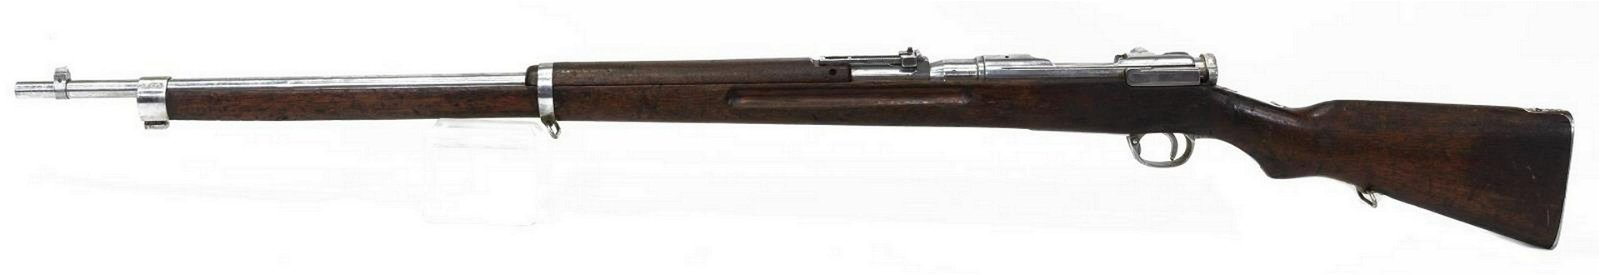 JAPANESE ARISAKA TYPE 38 RIFLE, CHROMED